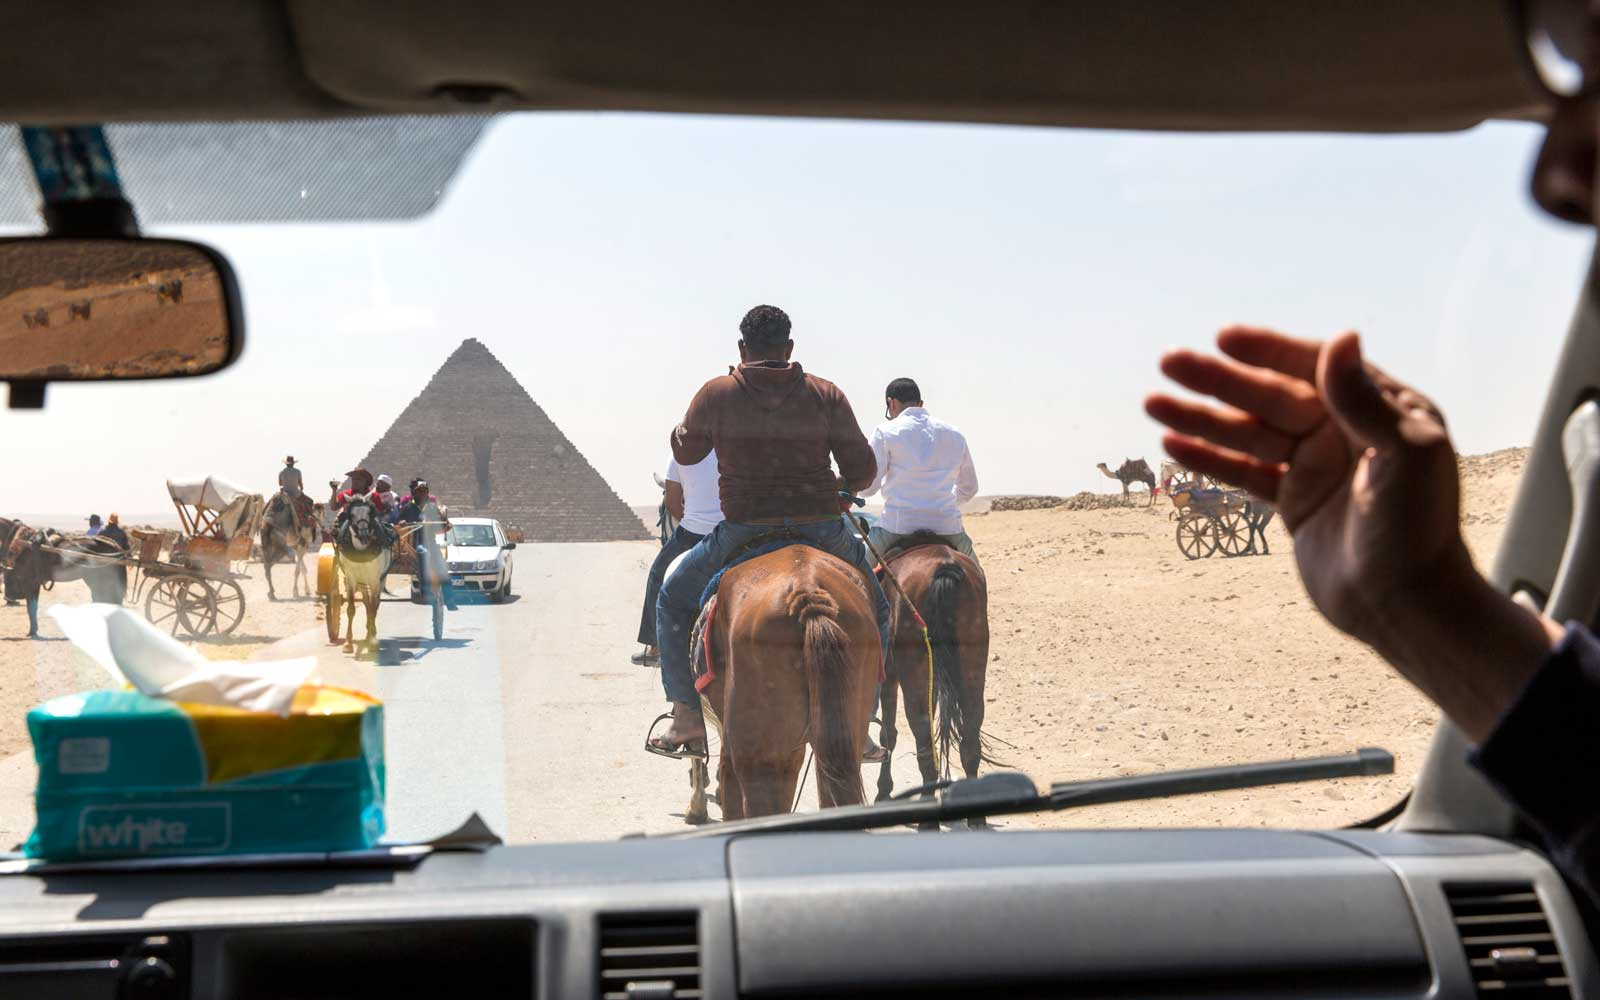 Taxis in Egypt